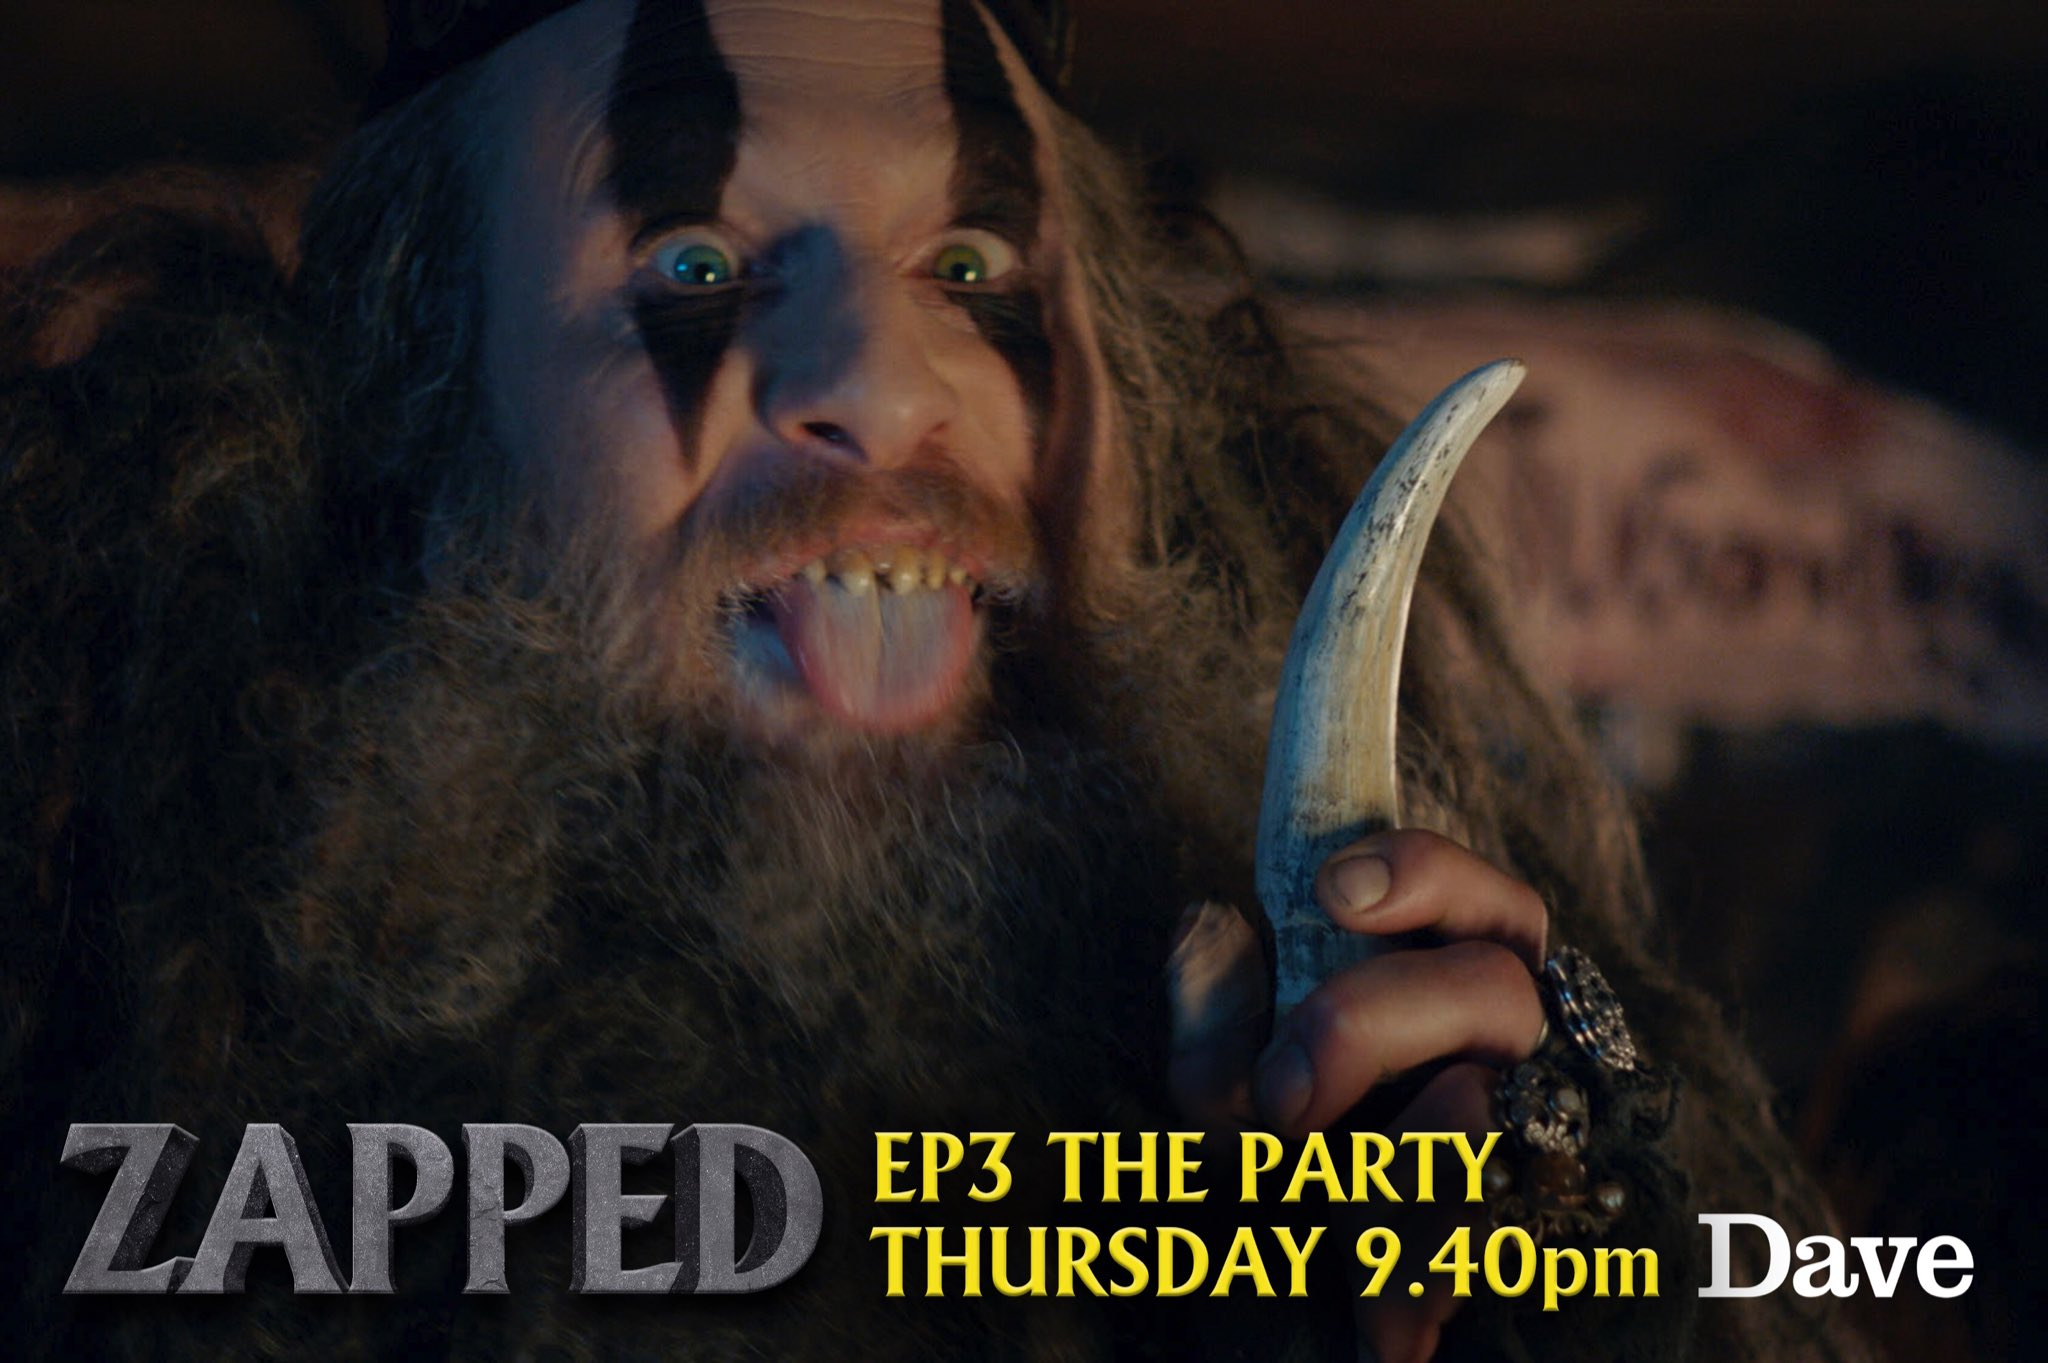 Check out my brother Paul in zapped tonight x x x https://t.co/eOkIMFCaH0